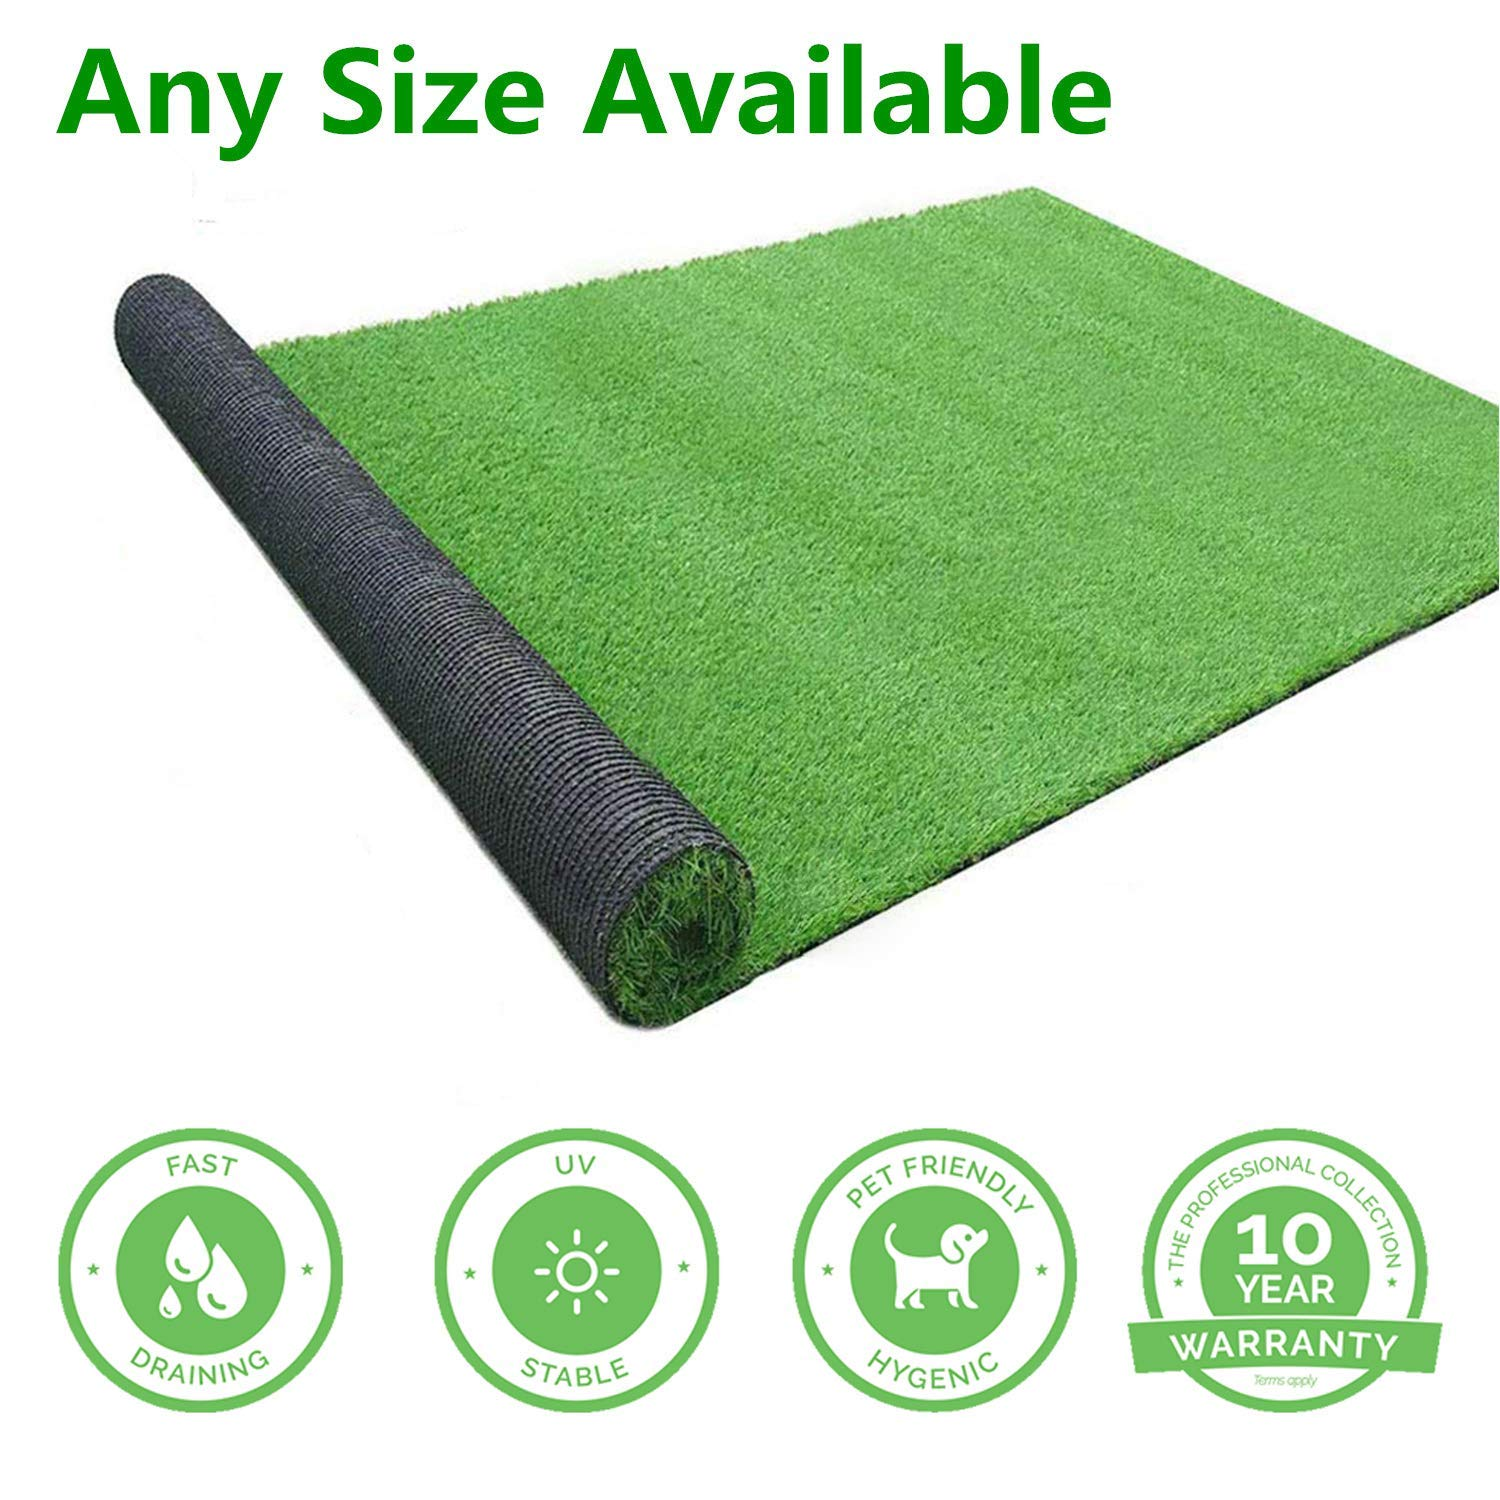 Gl Artificial Turf Grass Lawn 5 Ft X8 Ft Realistic Synthetic Grass Mat Indoor Outdoor Garden Lawn Landscape For Pets Fake Faux Grass Rug With Drainage Holes